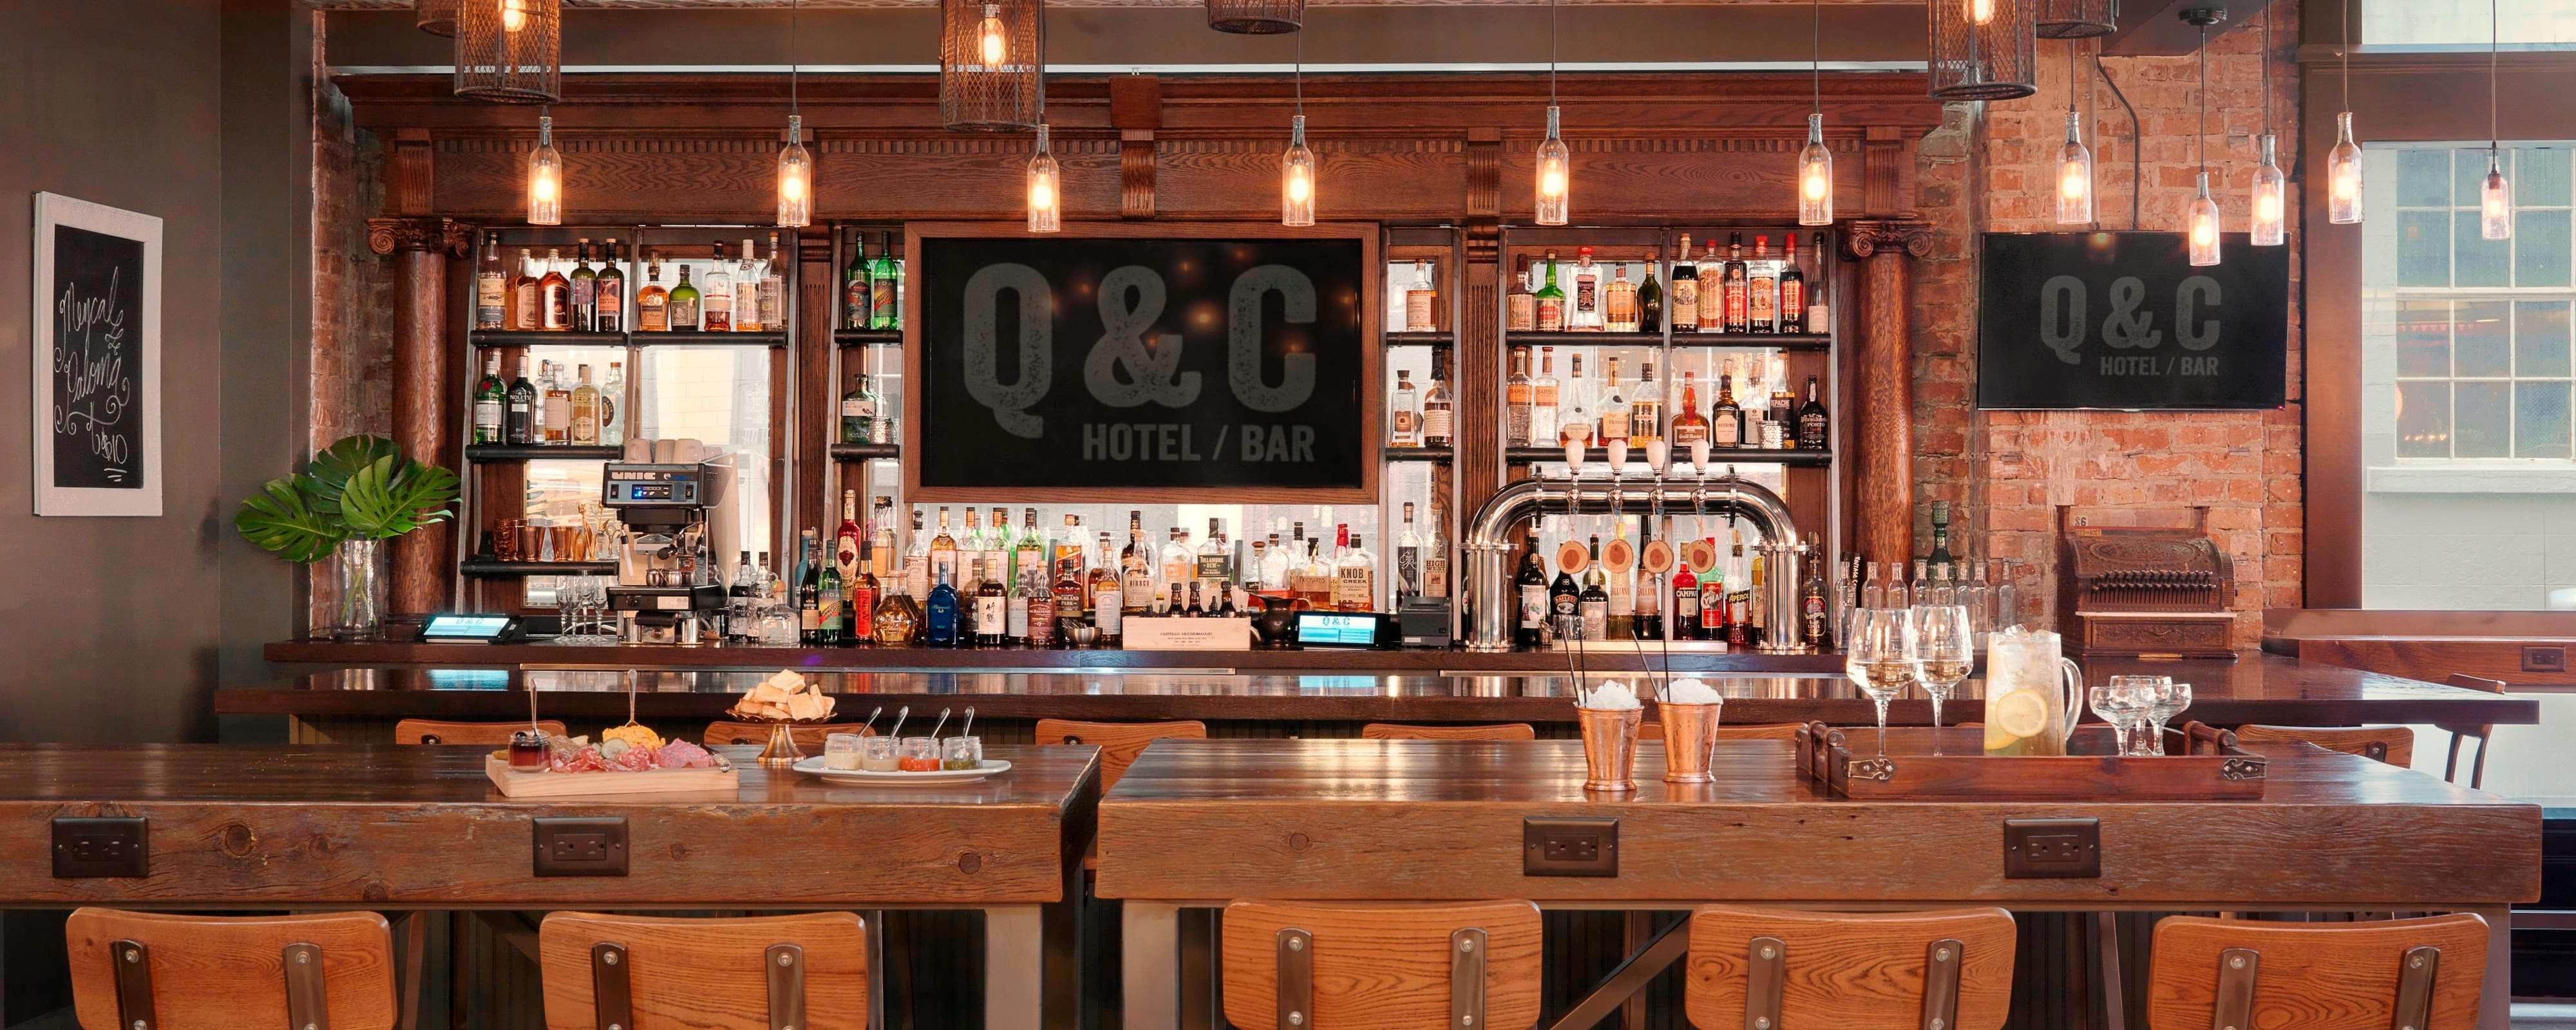 Q&C New Orleans – Hotelbar